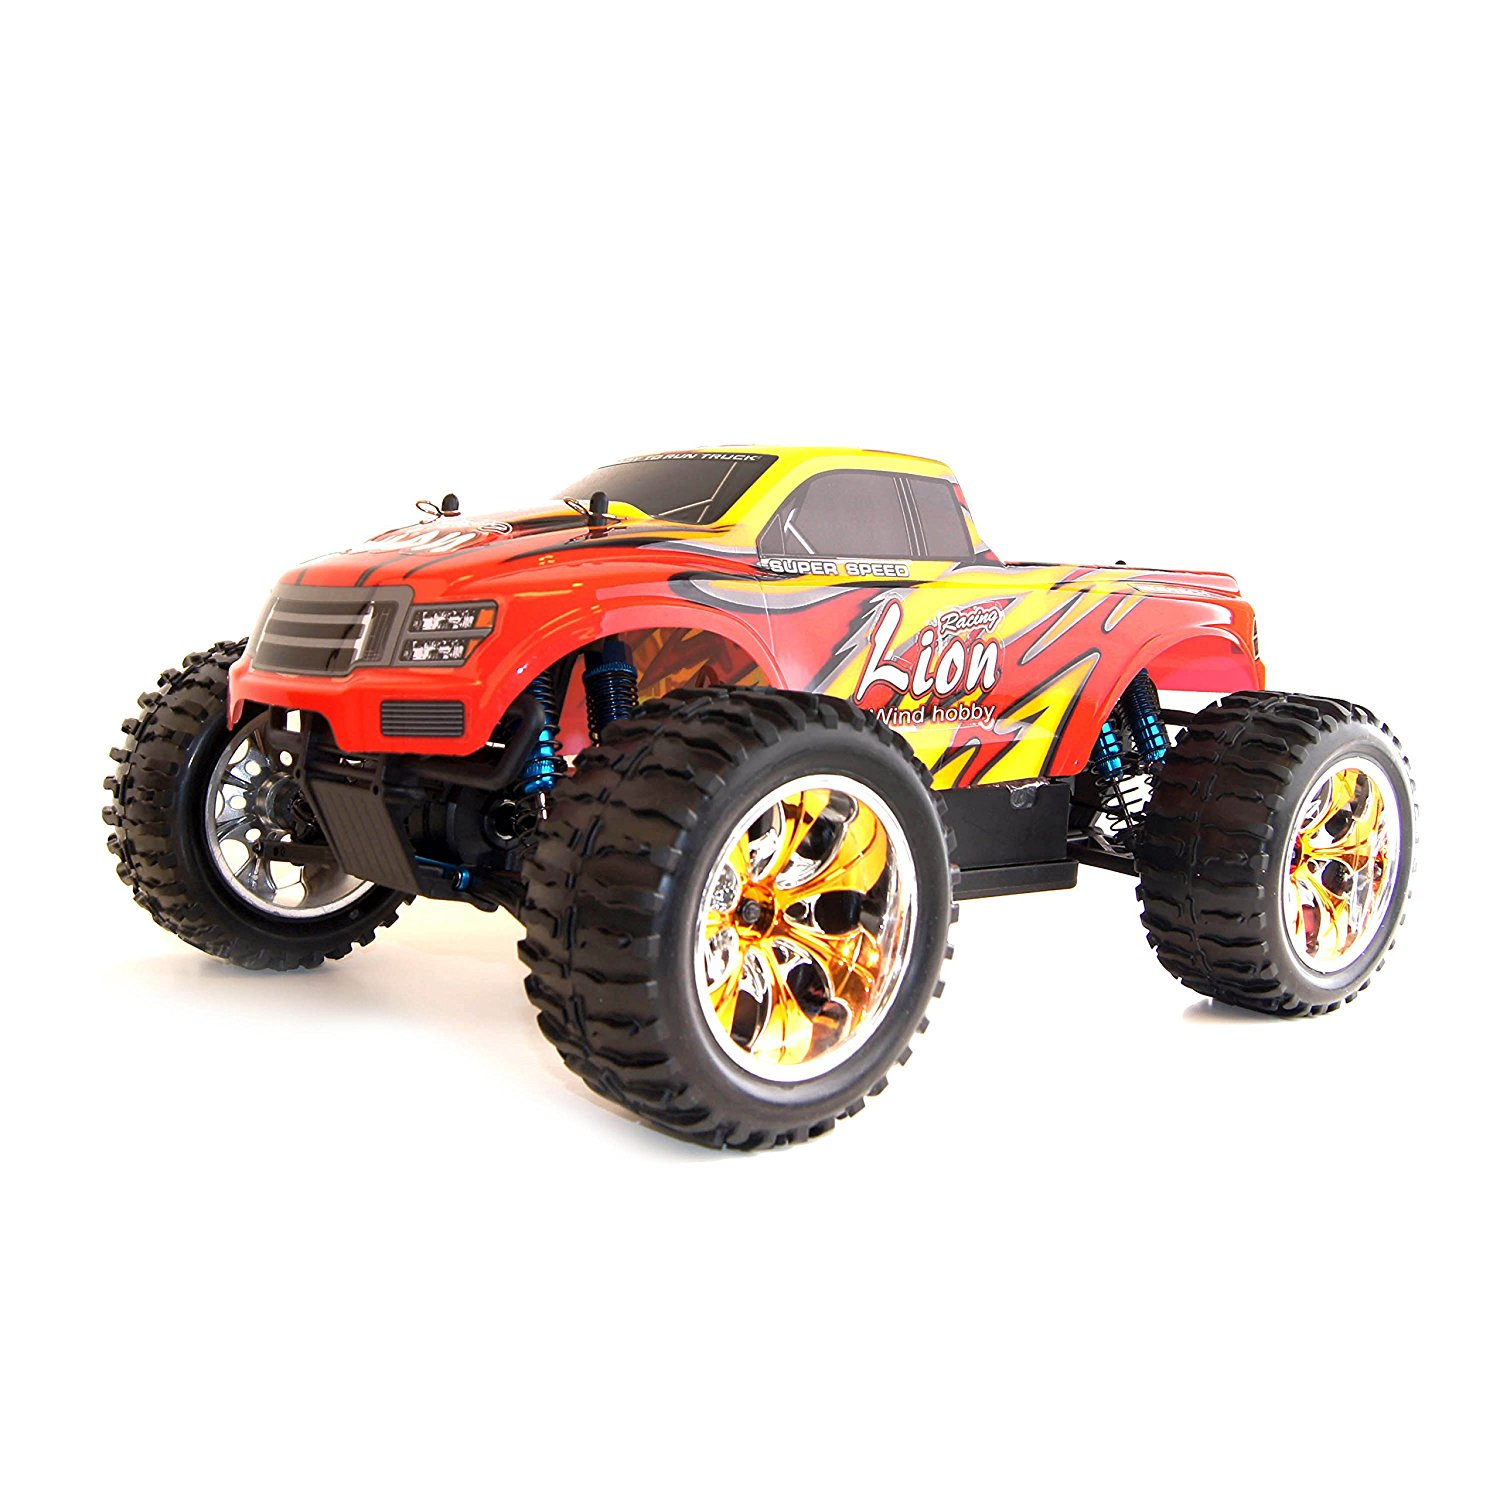 4WD Brushless Electric Powered High Speed Off-Road RC PRO Monster Truck, Red 1/1